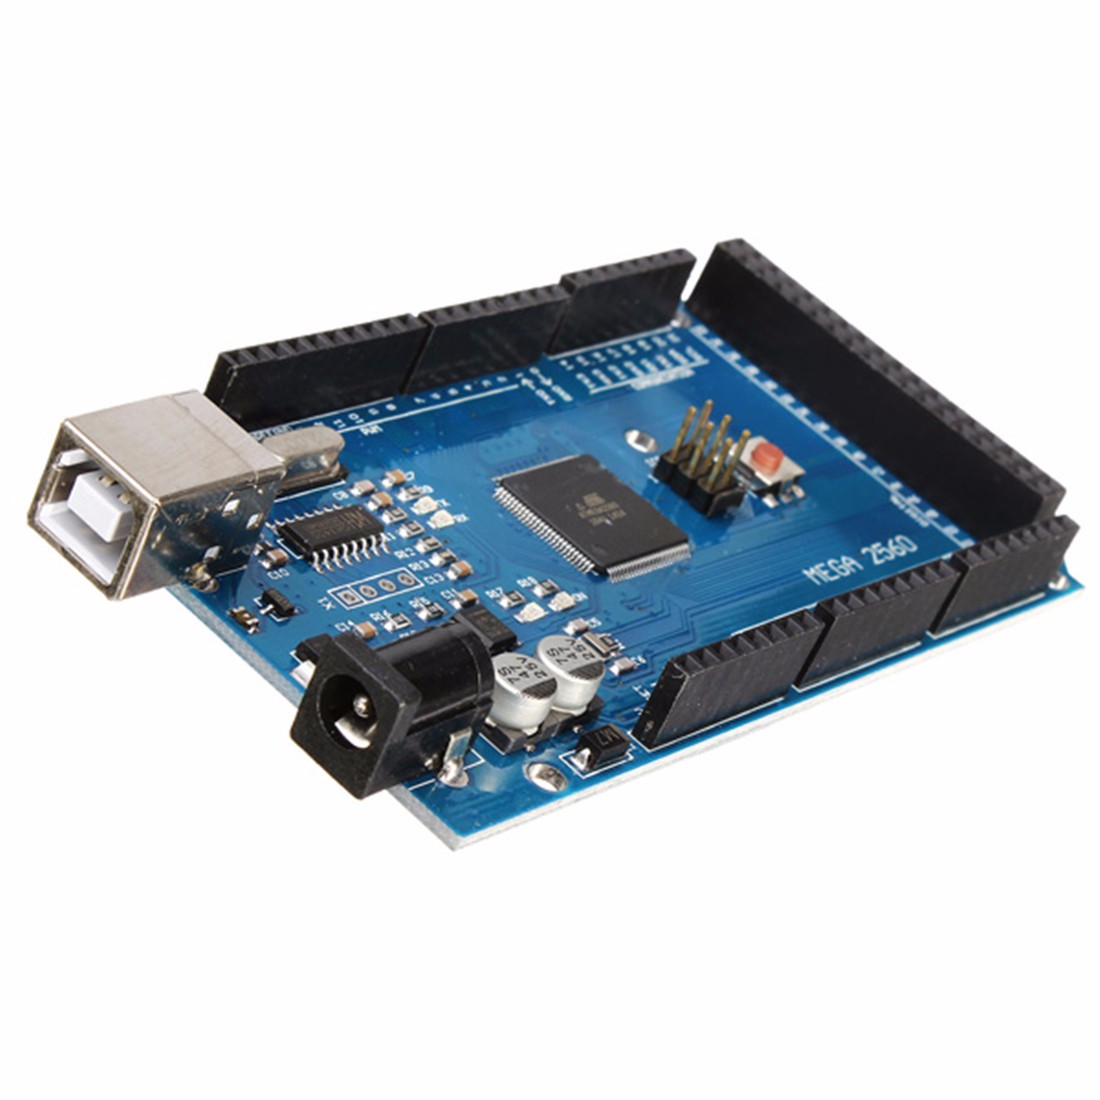 Best Promotion Mega2560 R3 ATMEGA2560-16AU + CN340 Board With USB For Arduino New Electric Unit(China (Mainland))